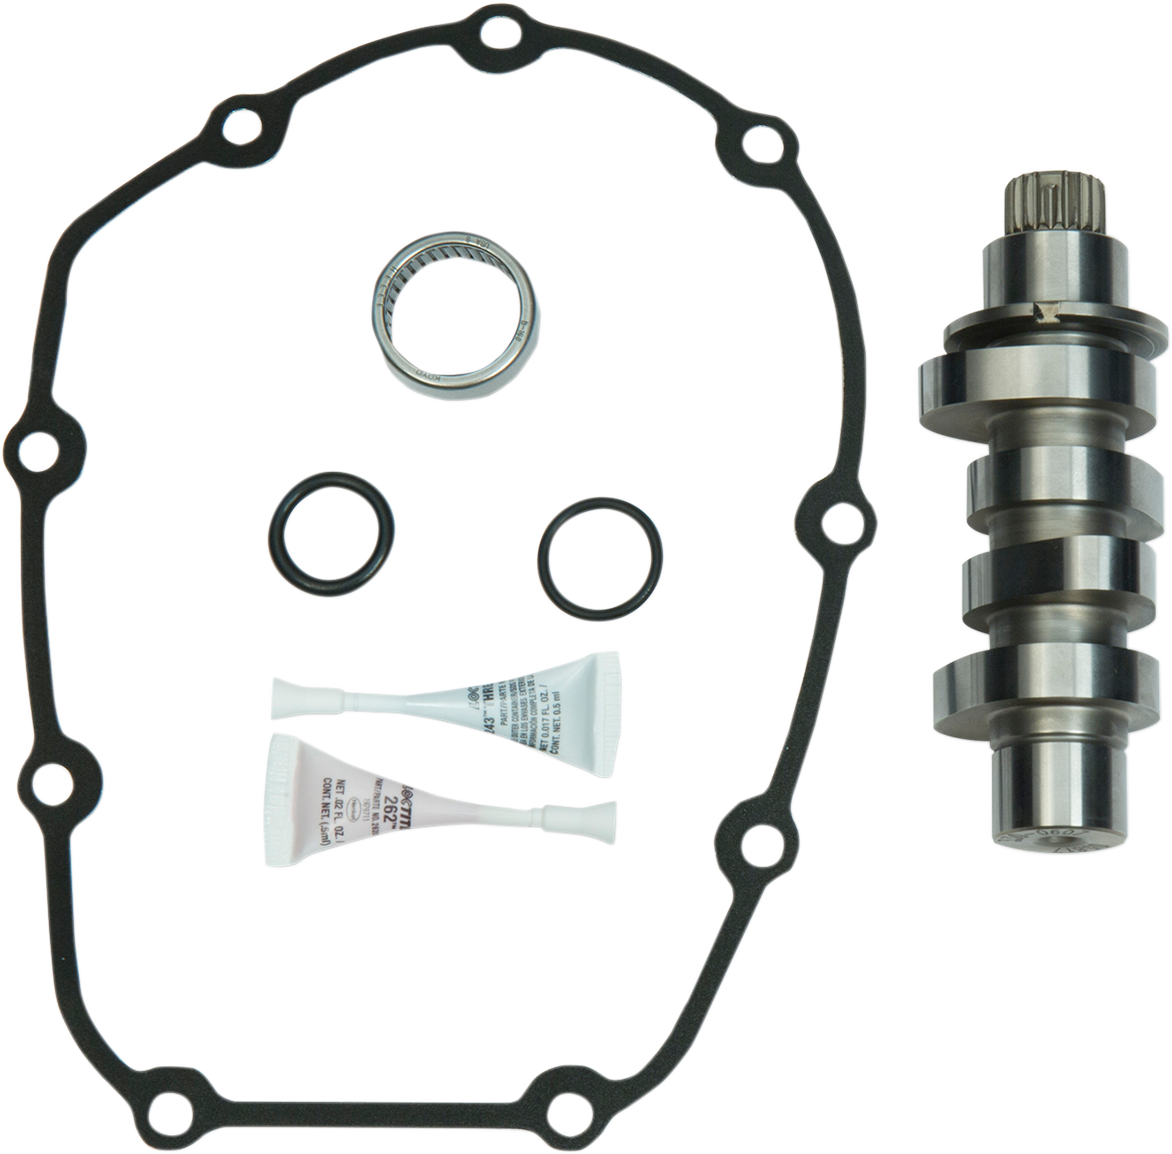 S&S 465 Series Motor Chain Cam Kit for 17-18 Harley M8 Touring Softail Breakout